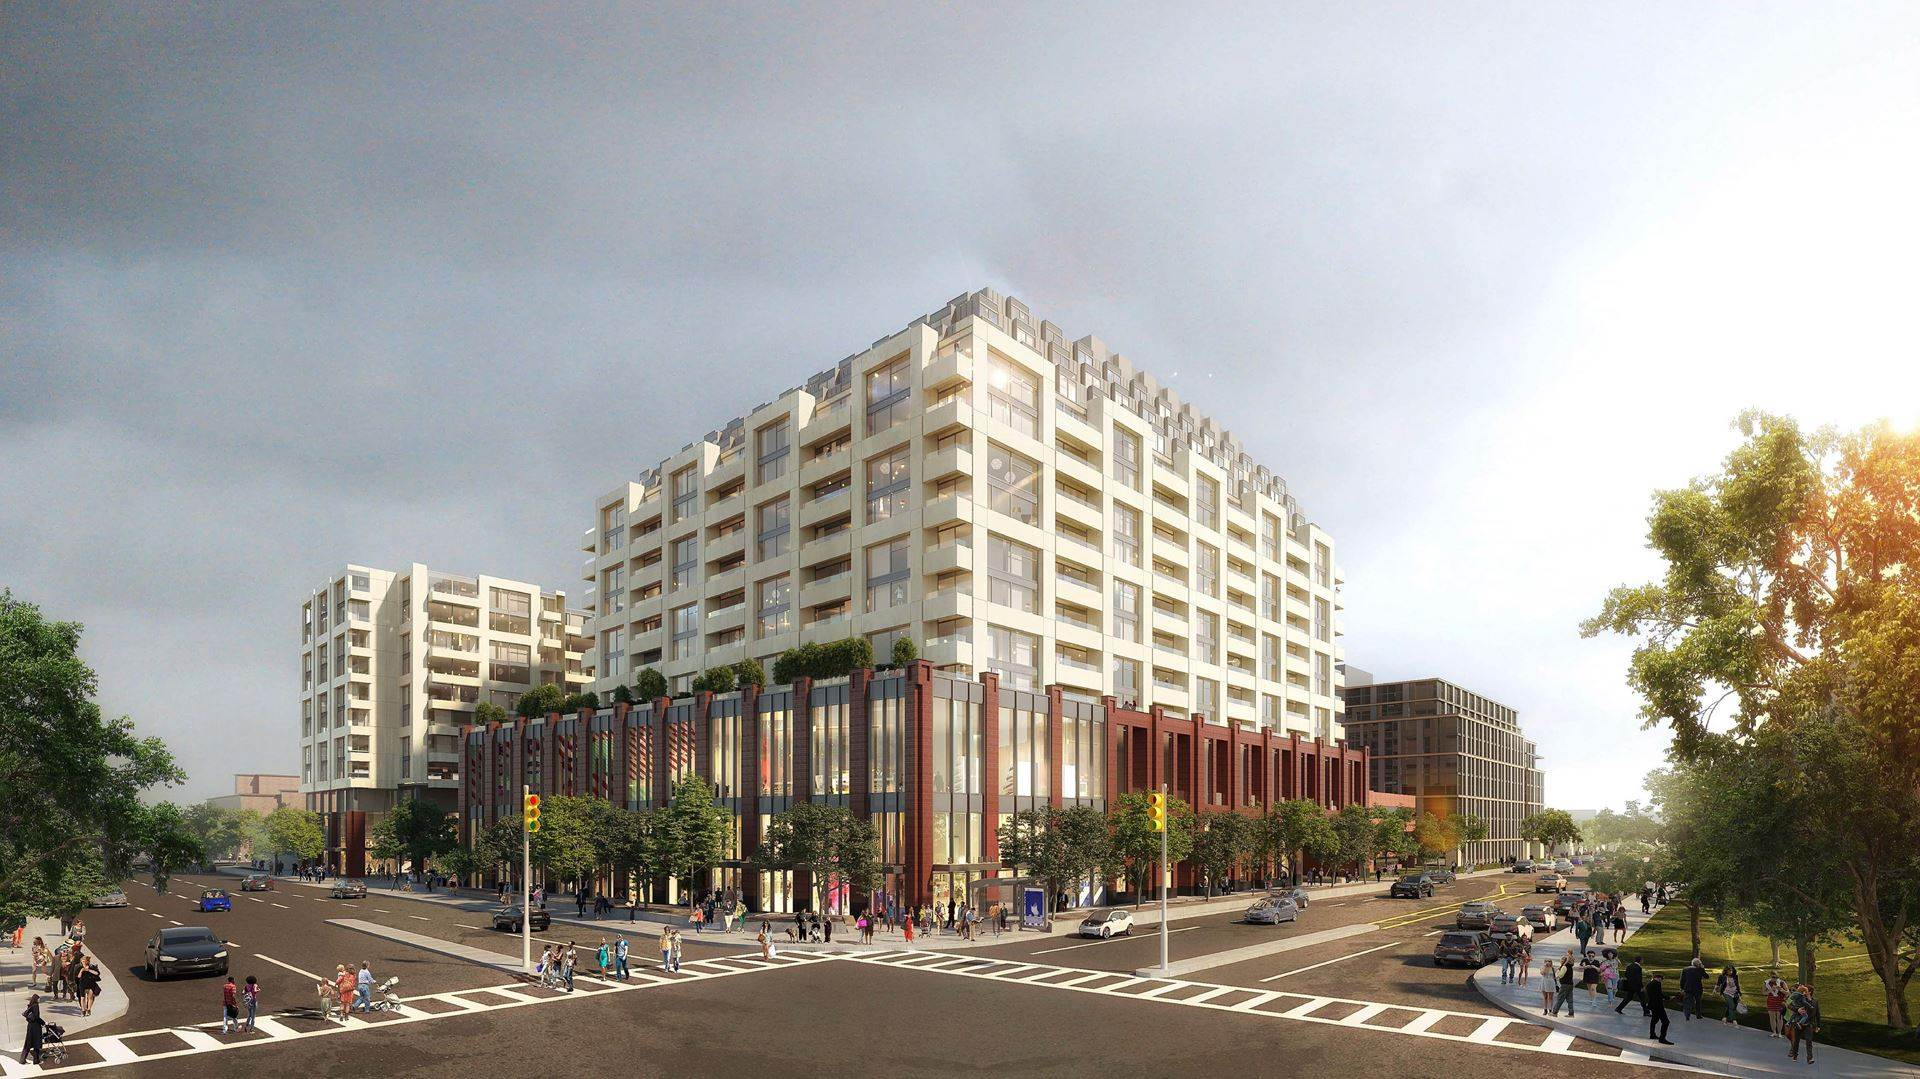 2020_06_10_03_01_08_lawrenceavenue_firstcapital_rendering_exterior2